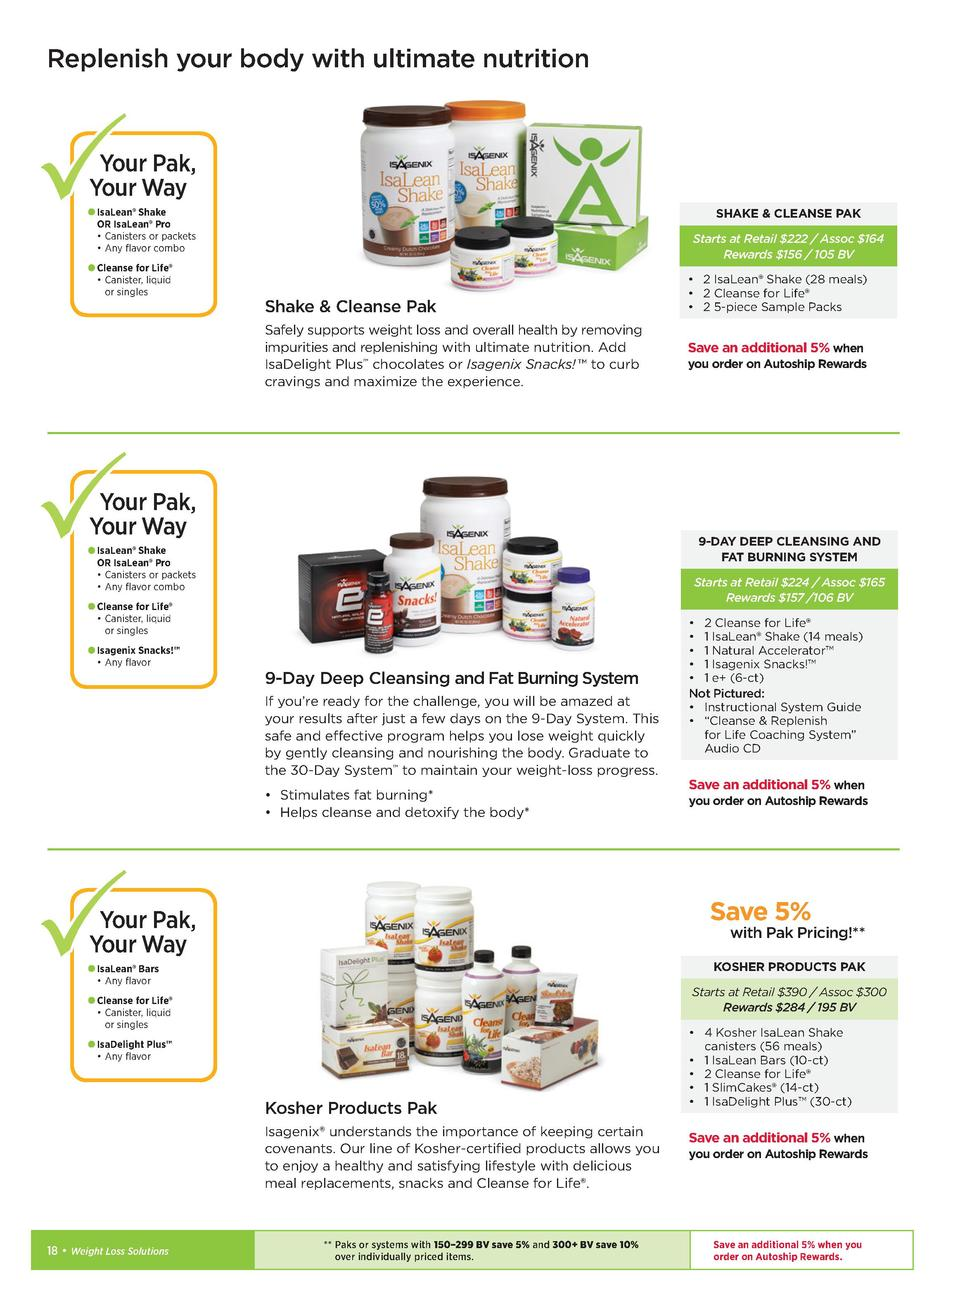 Solutions to transform lives simplebooklet replenish your body with ultimate nutrition your pak your way isalean shake or isalean pro malvernweather Images